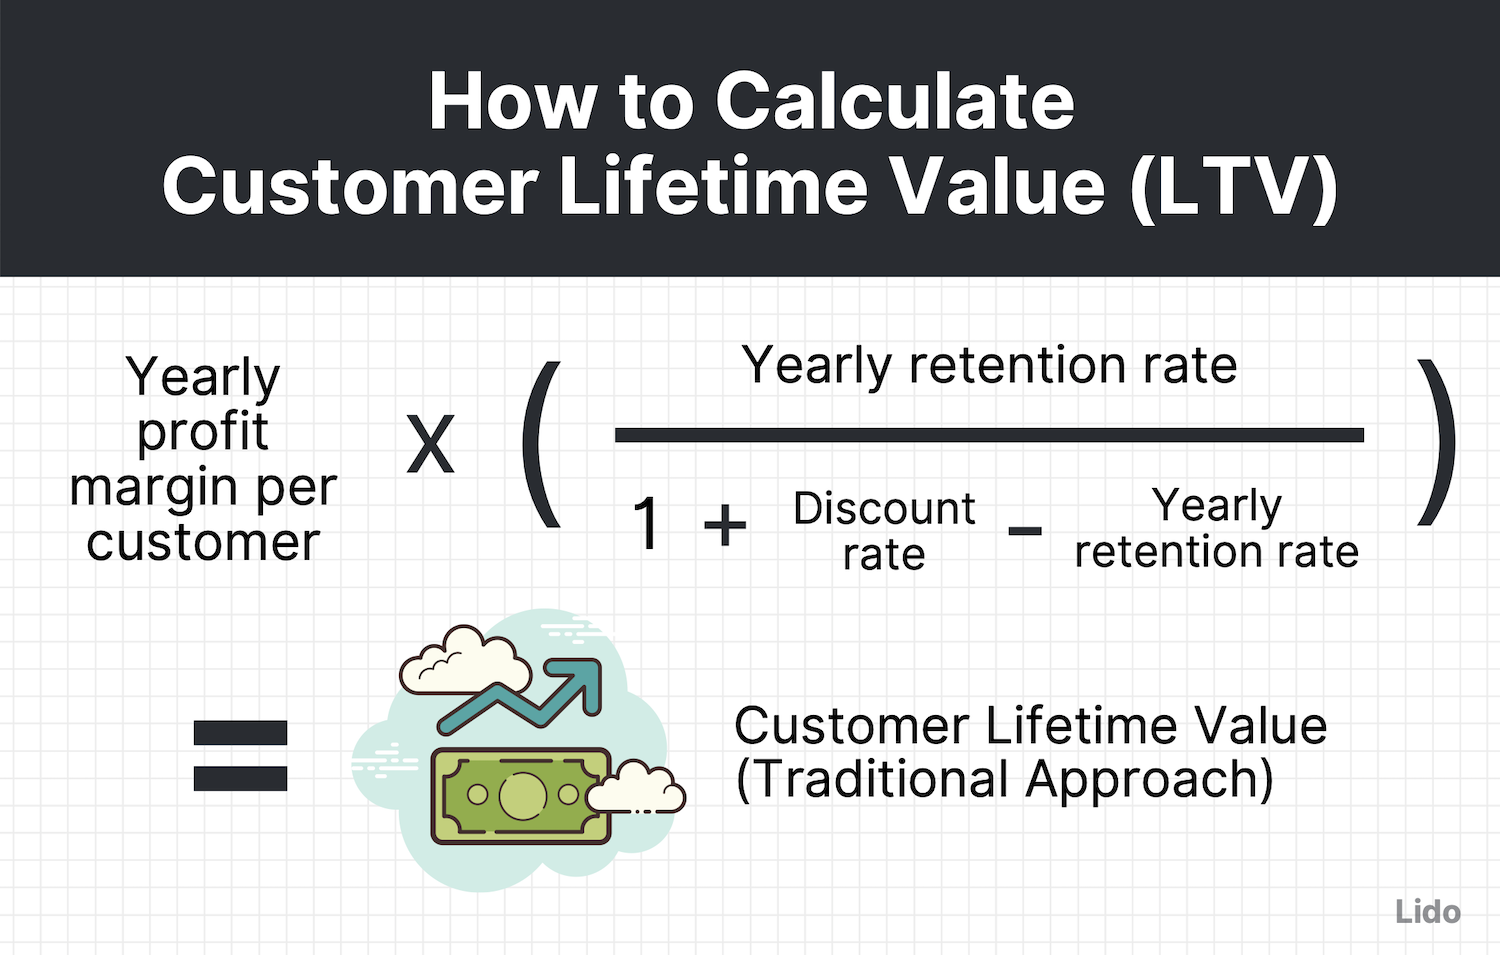 traditional customer lifetime value equation = yearly profit margin per customer * [yearly retention rate / (1 + the discount rate - the yearly retention rate)]